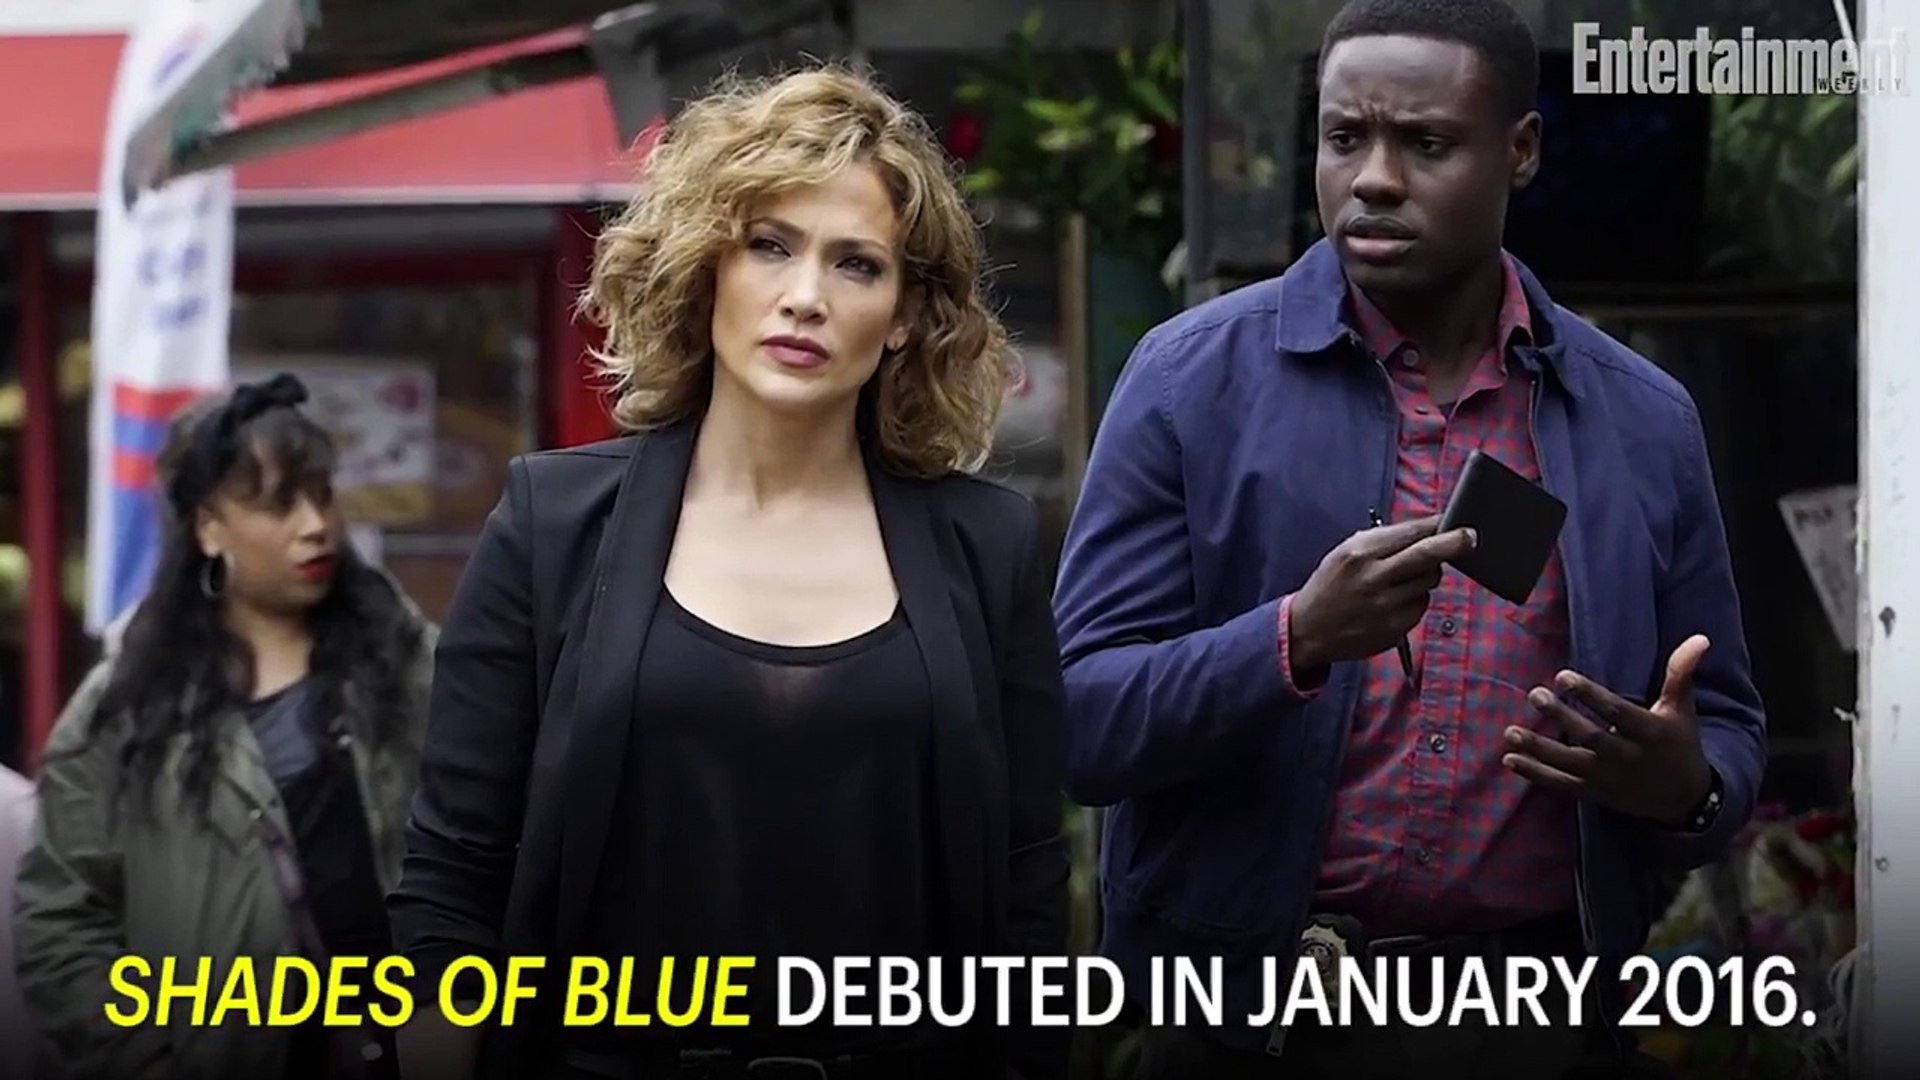 Jennifer Lopez's NBC Drama 'Shades Of Blue' To End After Season | News Flash | Entertainment Weekly